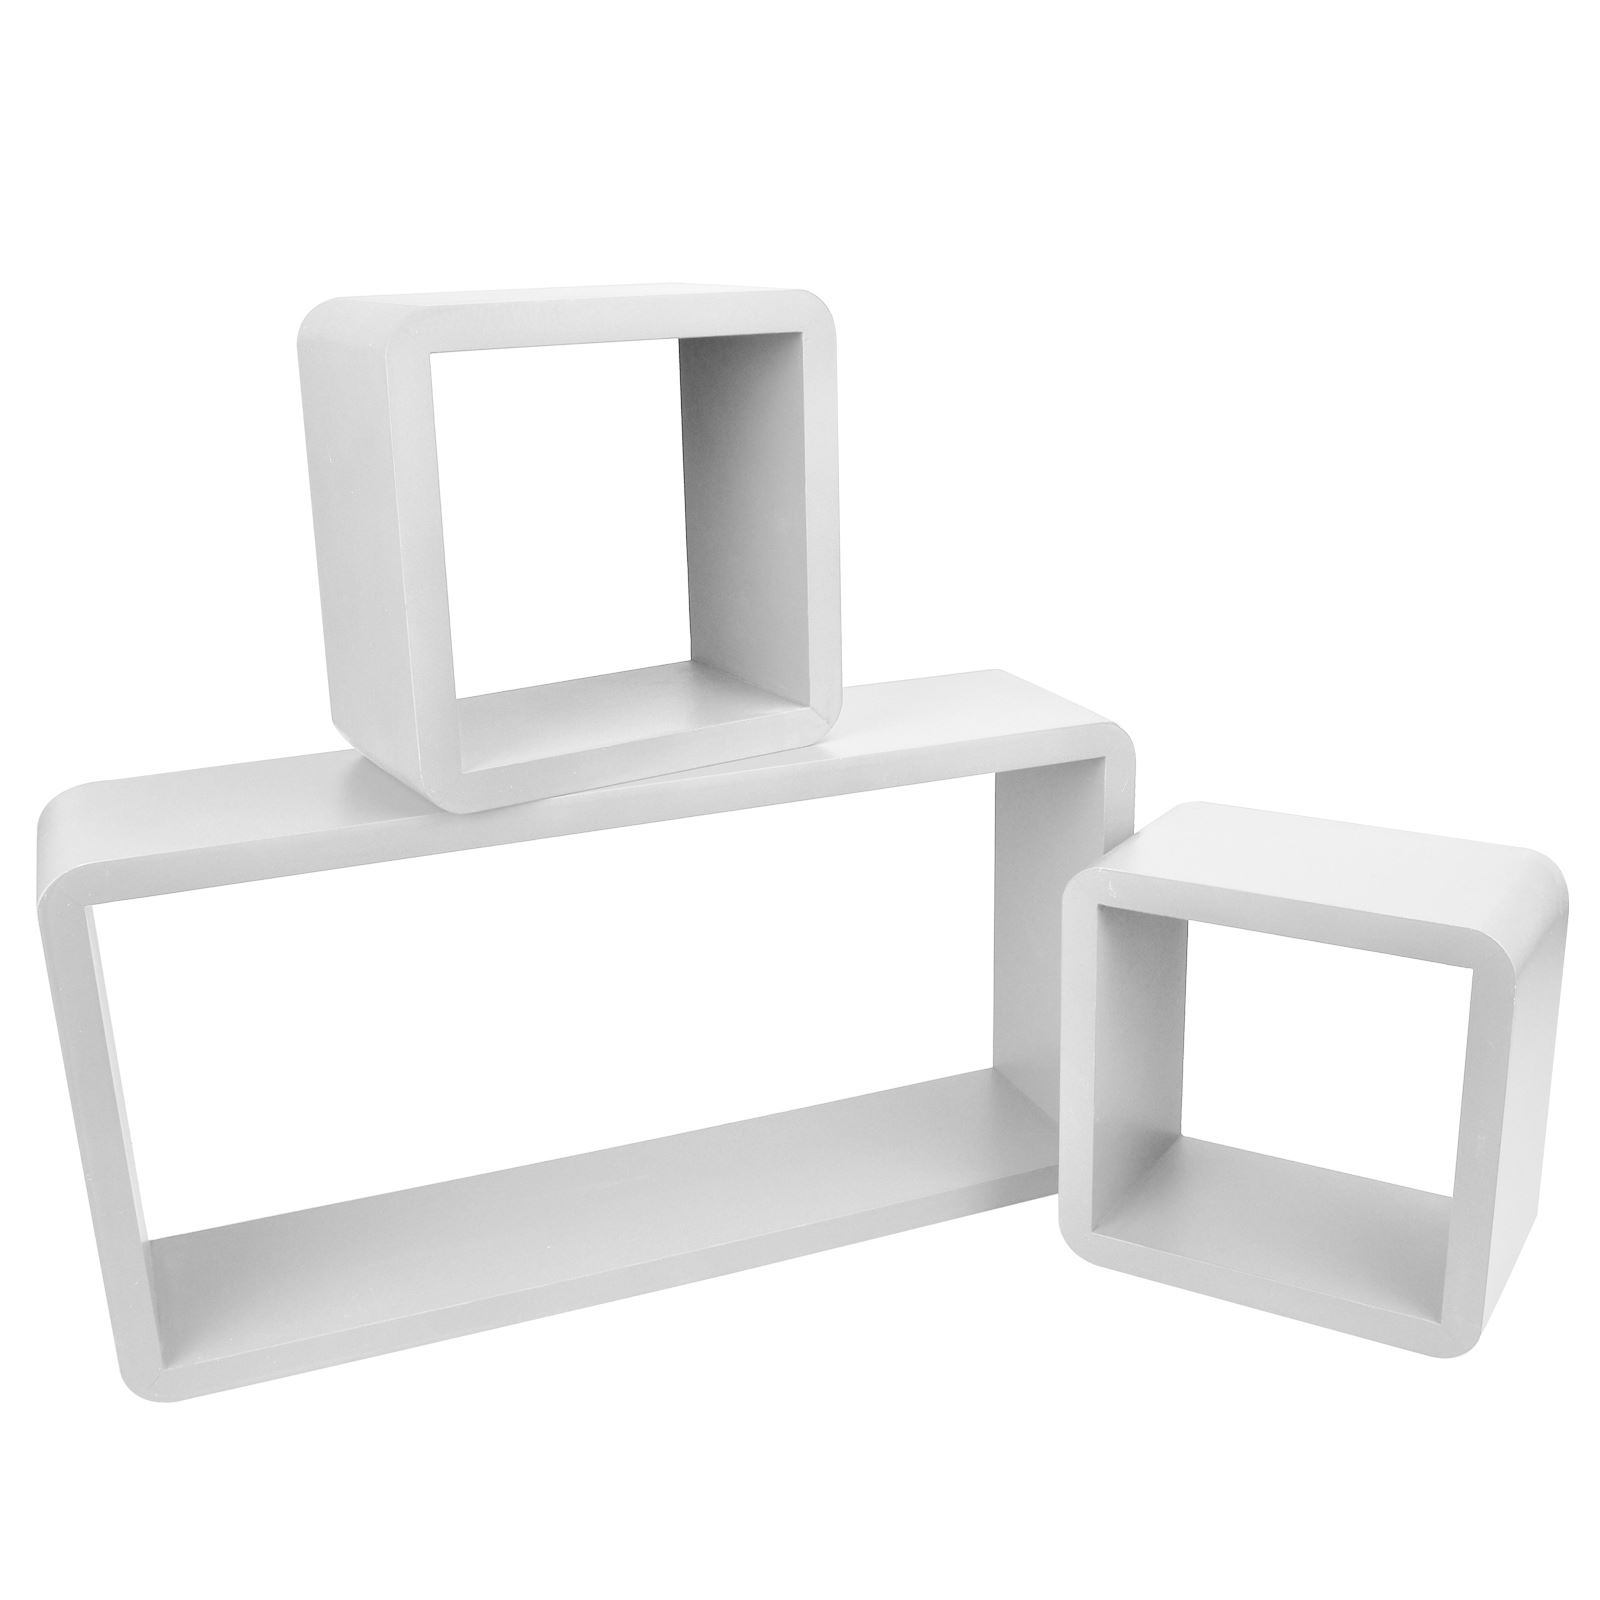 3pc-Set-Rectangle-Floating-Shelves-Wall-Mount-Storage-Book-Shelf-DVD-CD-Stand thumbnail 25